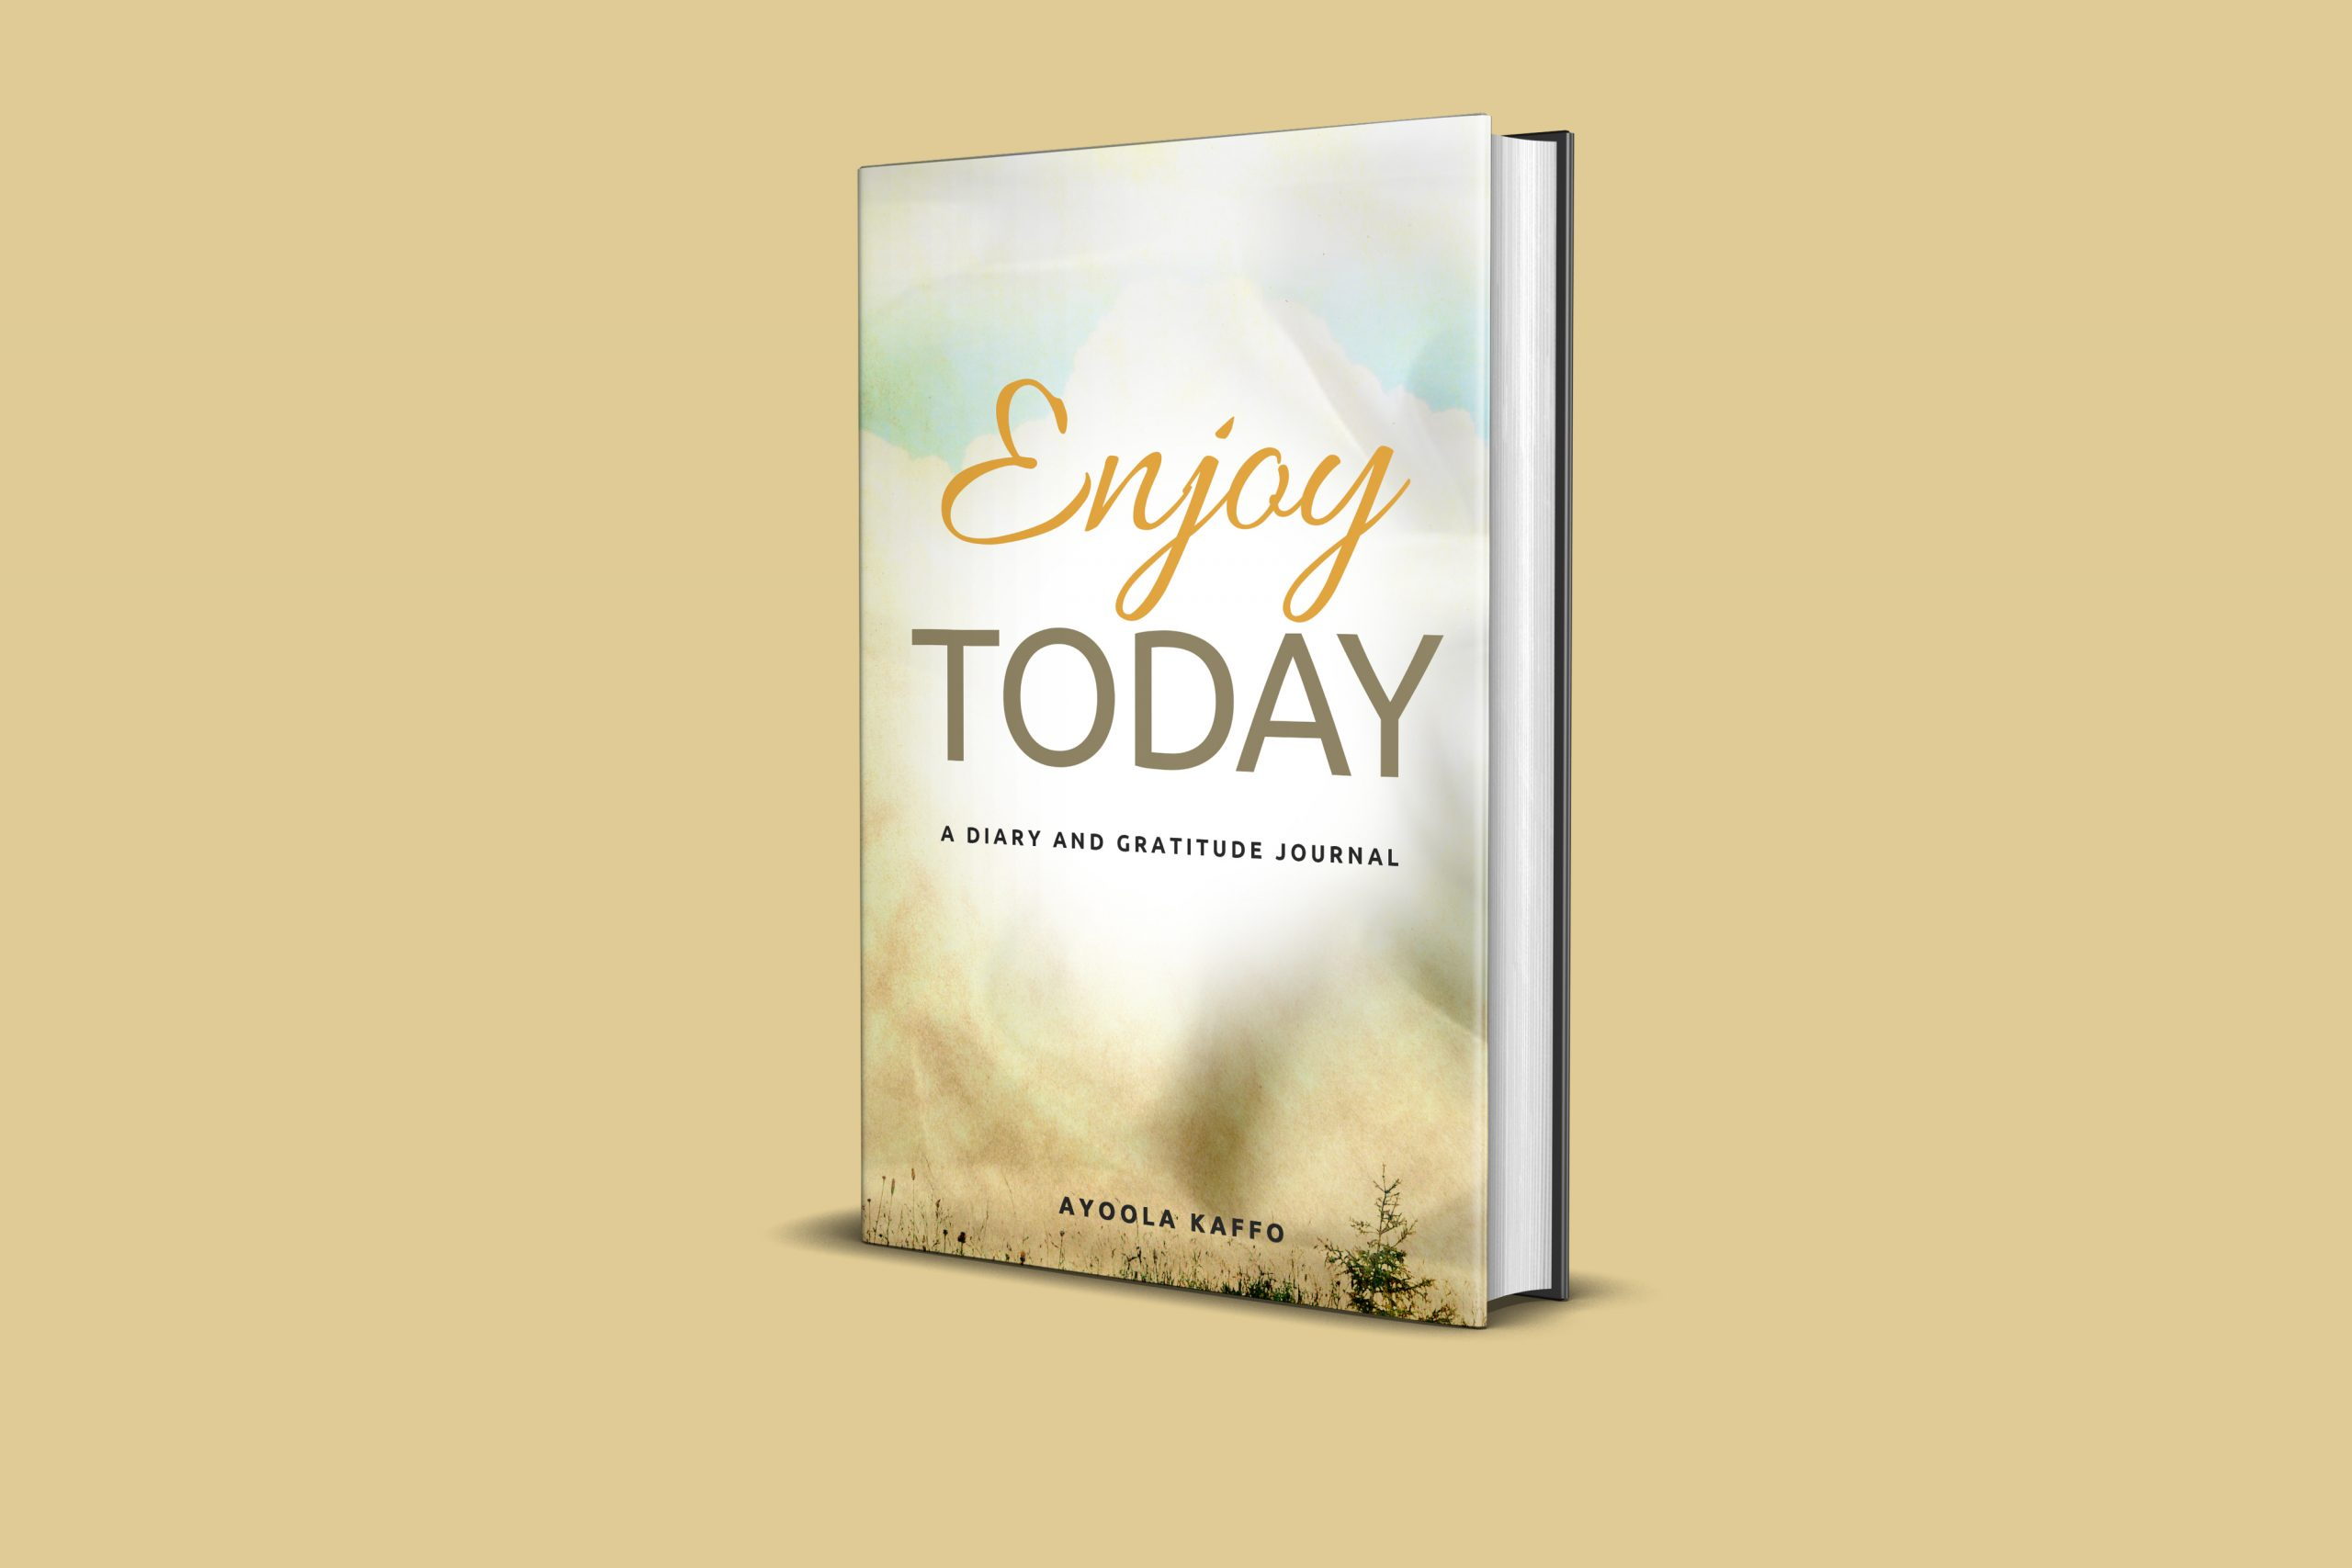 Enjoy Today: A Diary and Gratitude Journal